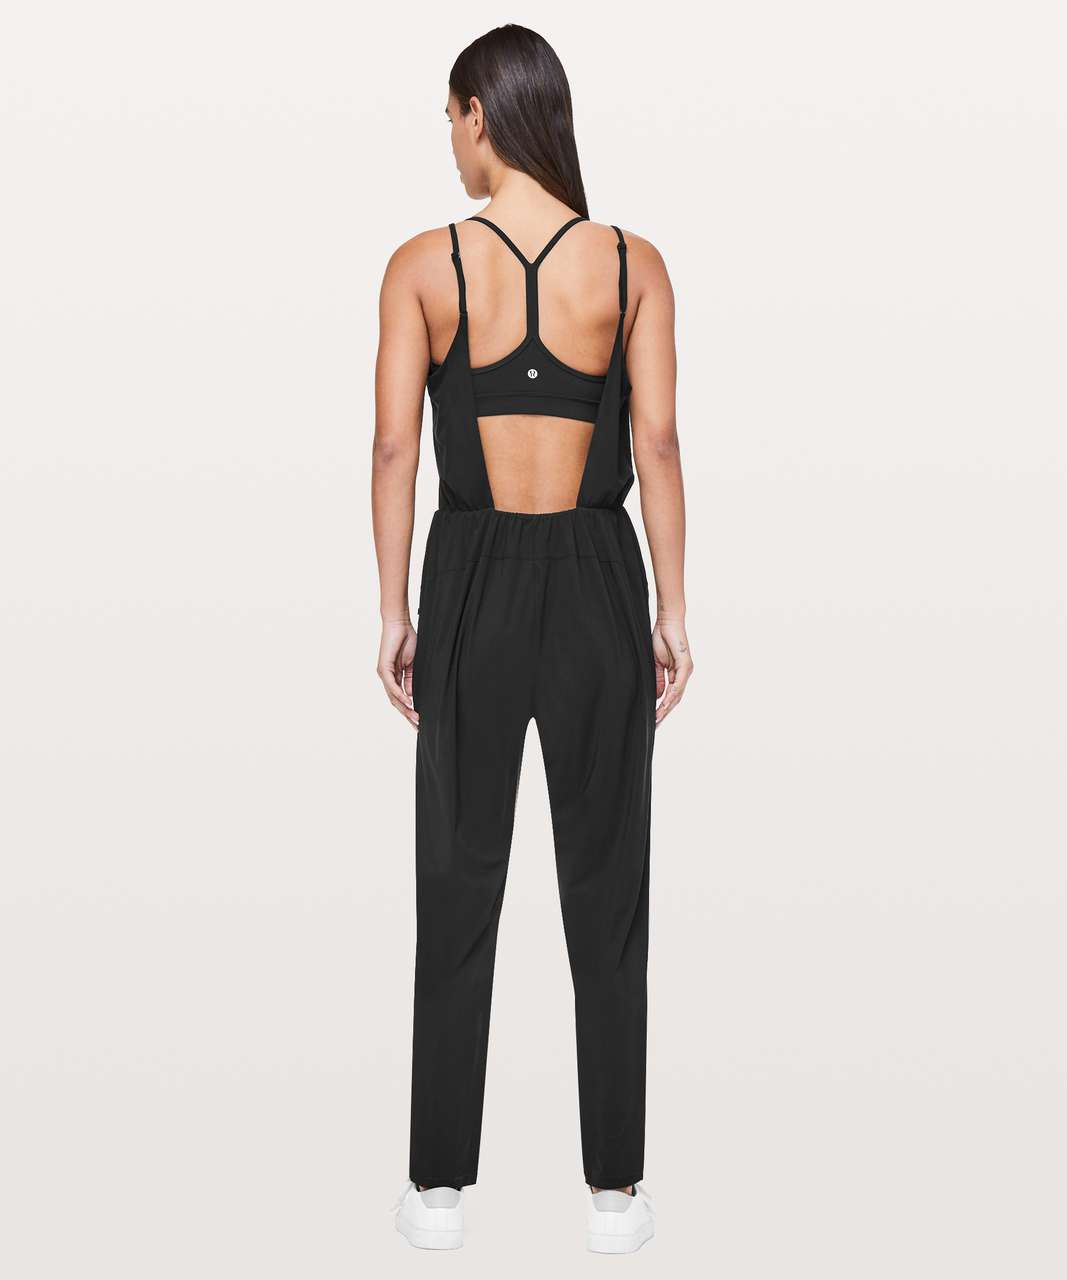 Lululemon All For It Onesie - Black